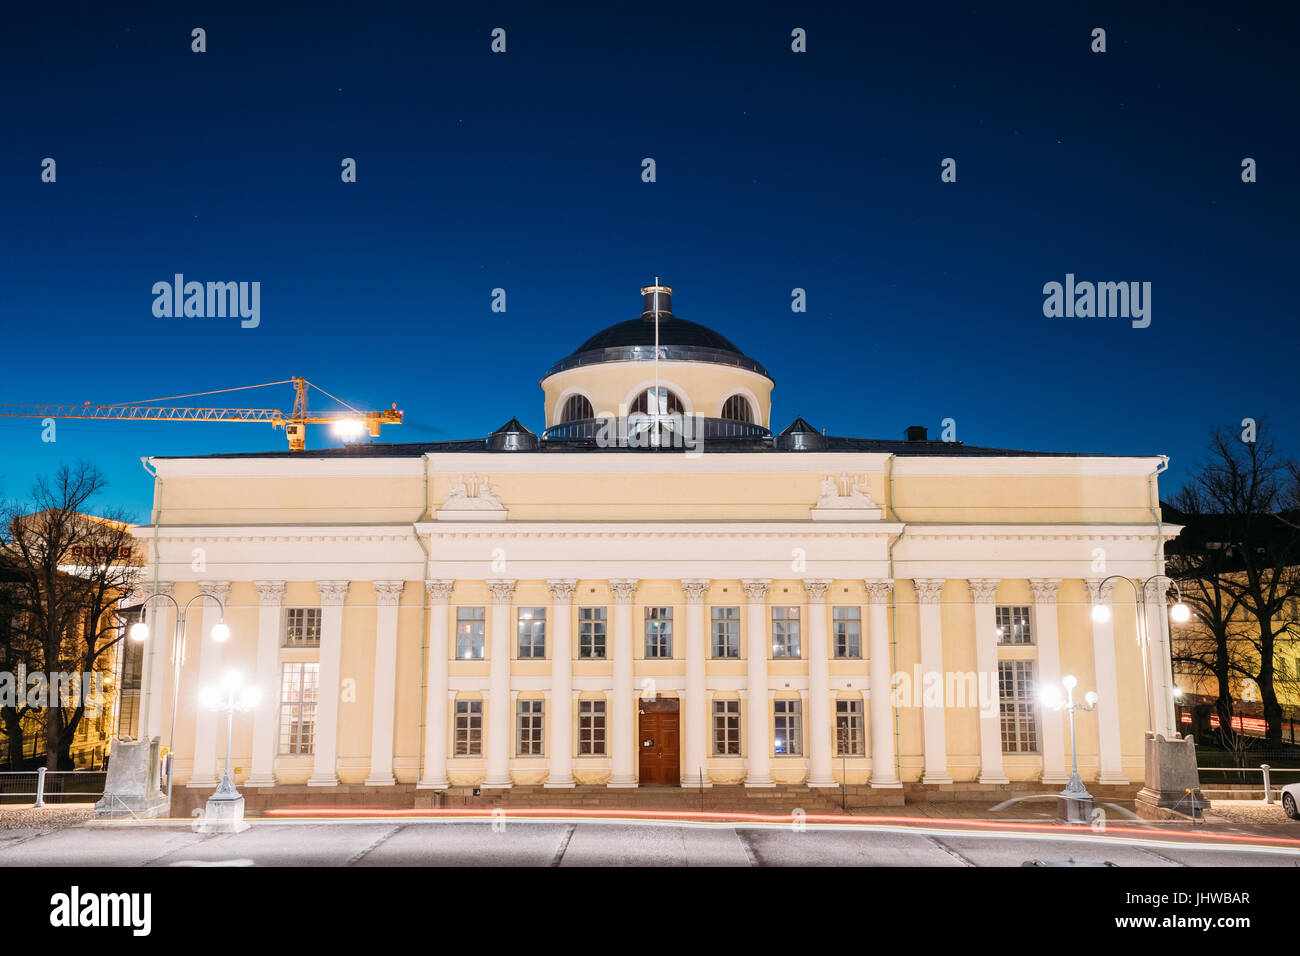 Helsinki, Finland. The National Library Of Finland In Lighting At Evening Or Night Illumination. Administratively - Stock Image